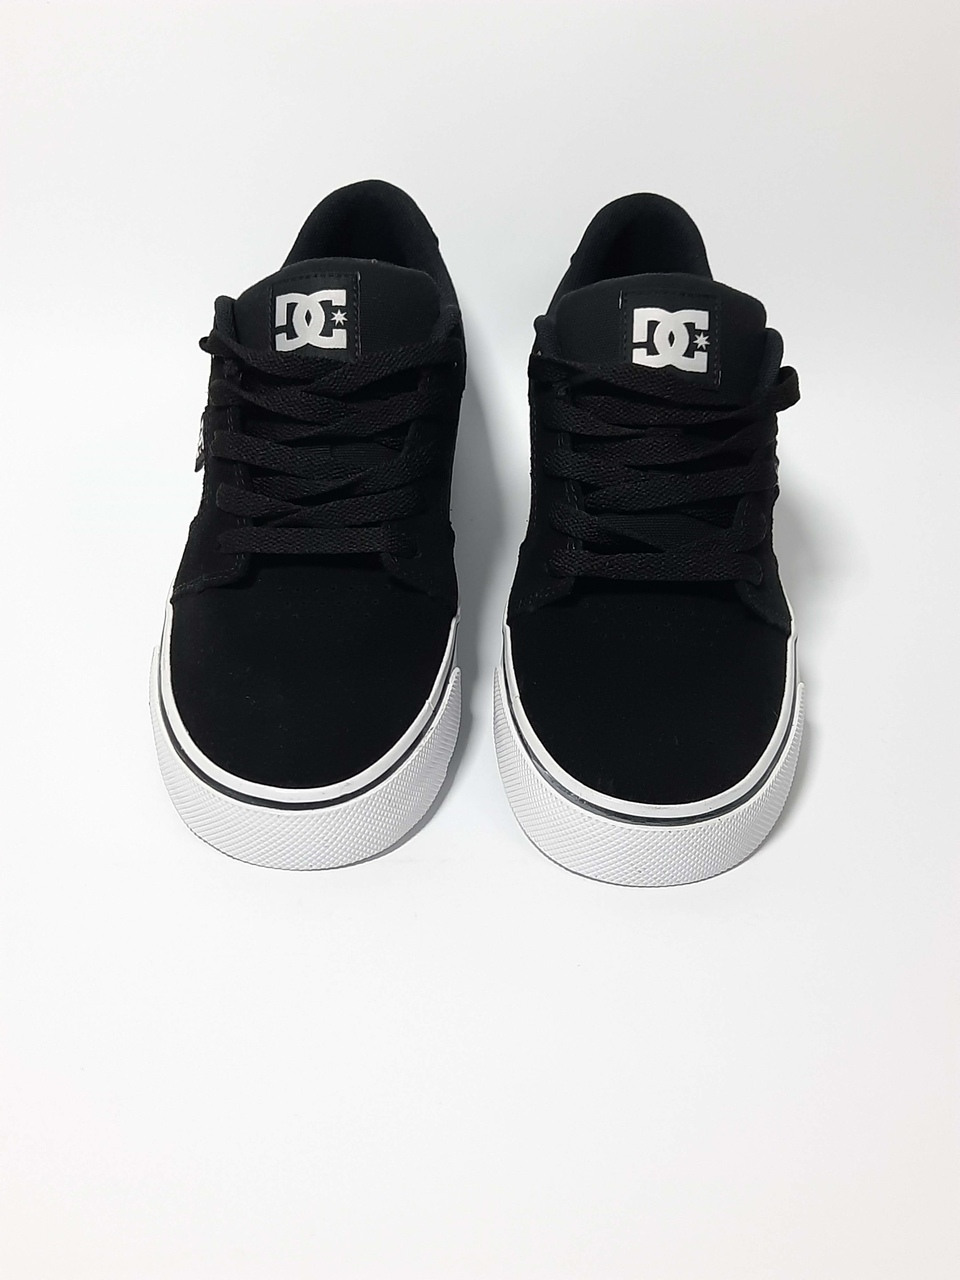 TÊNIS DC SHOES PRETO ANVIL LA